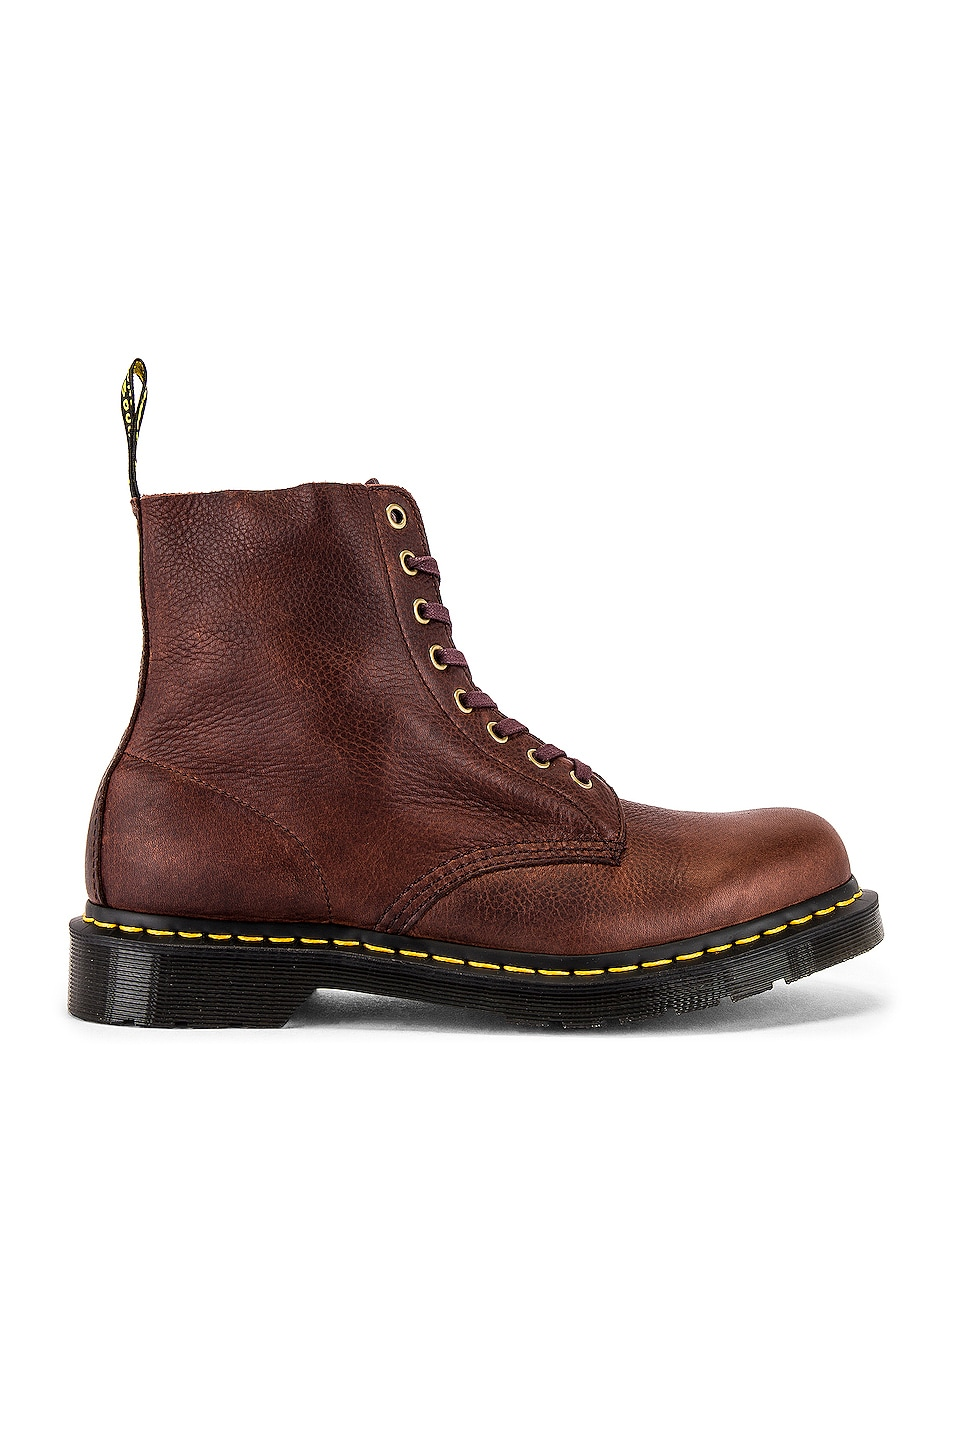 Image 1 of Dr. Martens 1460 Pascal Boot in Cask